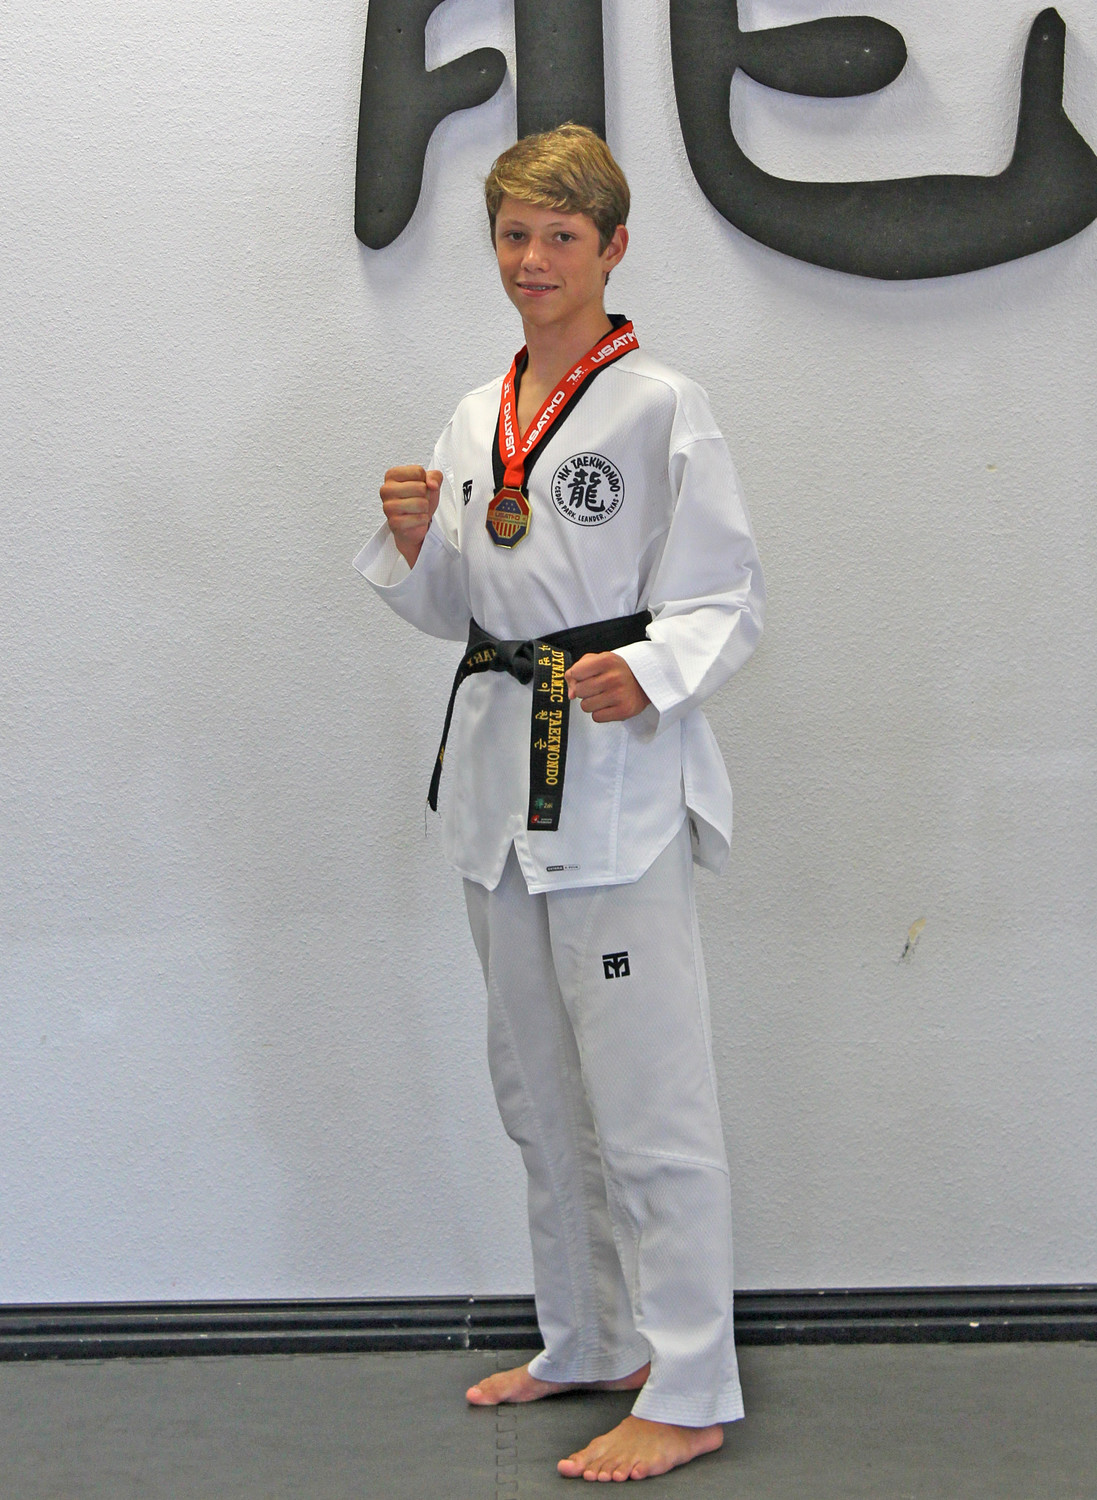 Zachary Houston, a 13-year-old student at Canyon Ridge Middle School, recently won a gold medal at the USA Taekwondo National Competition in Salt Lake City.